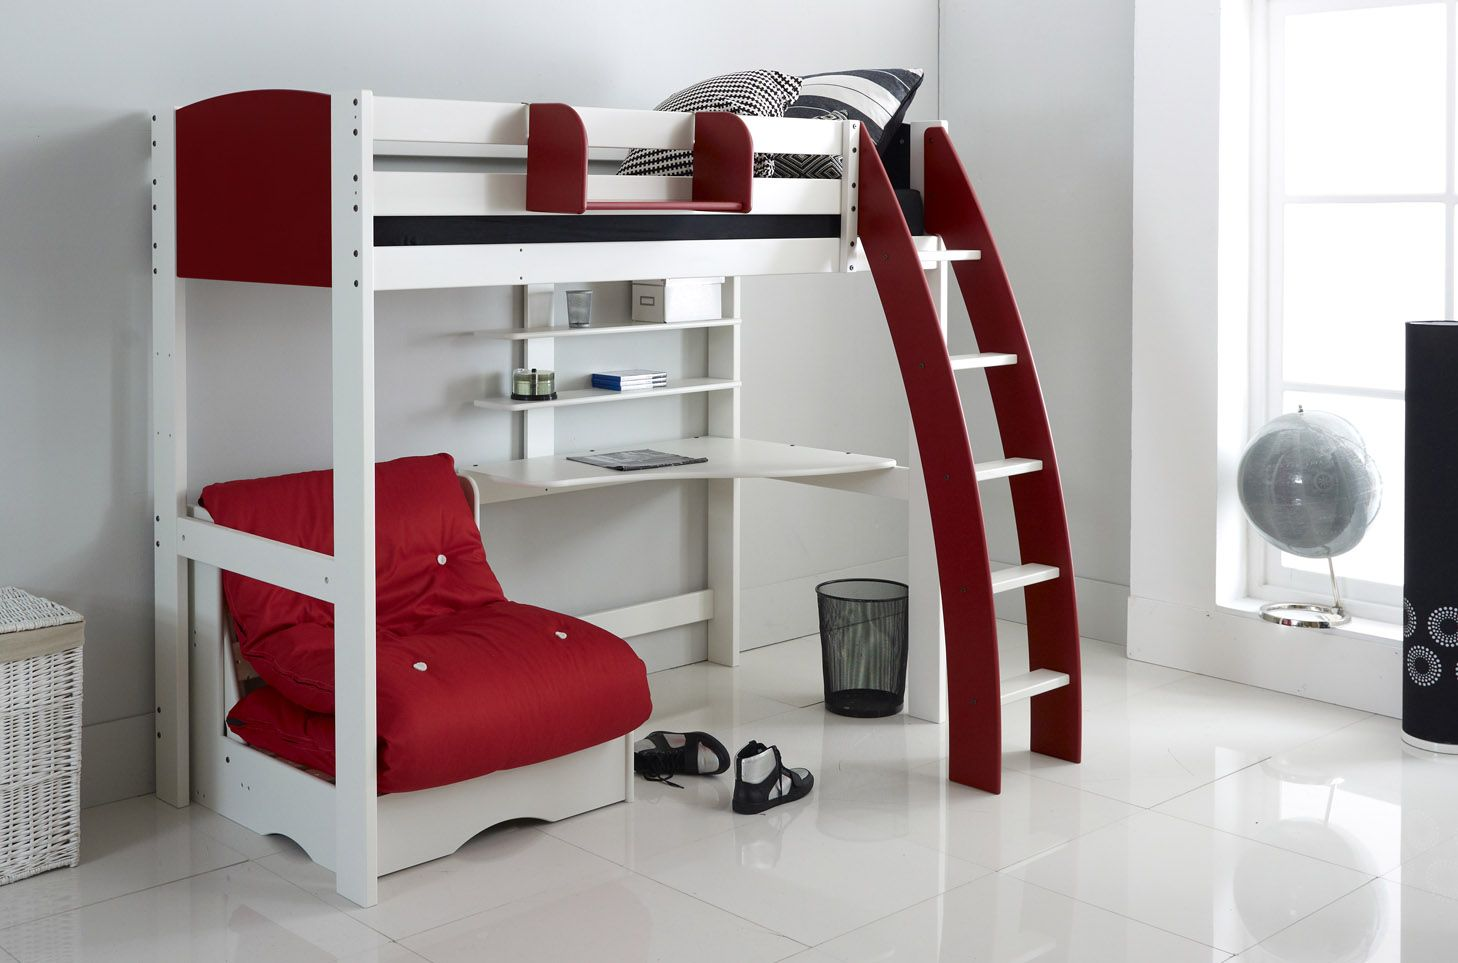 An Alternative To The Scallywag Modular Range This High Sleeper Bed Comes Complete With Integral Desk Shelves And A Free Standing Chair Futon